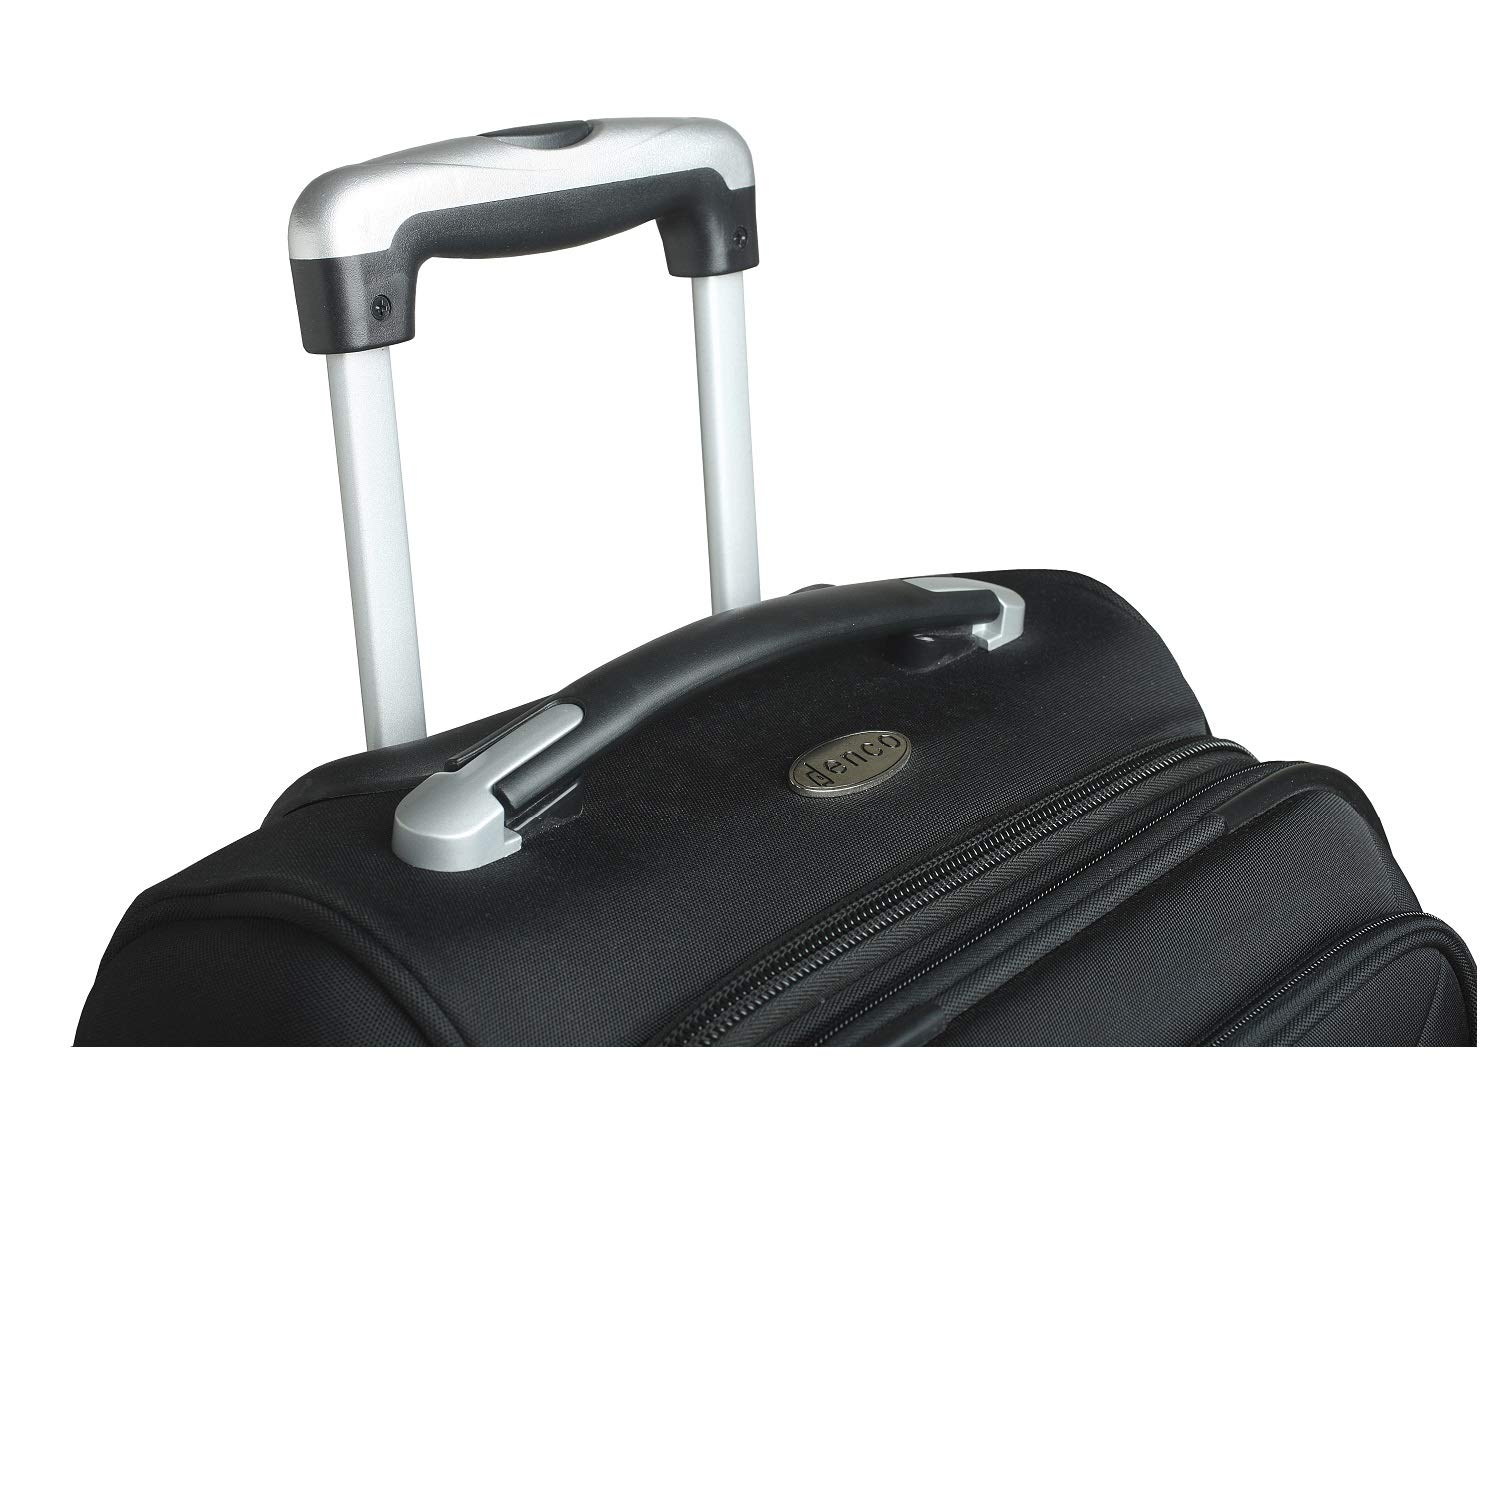 NFL Dallas Cowboys 21-inch Carry-On Luggage by Denco (Image #6)